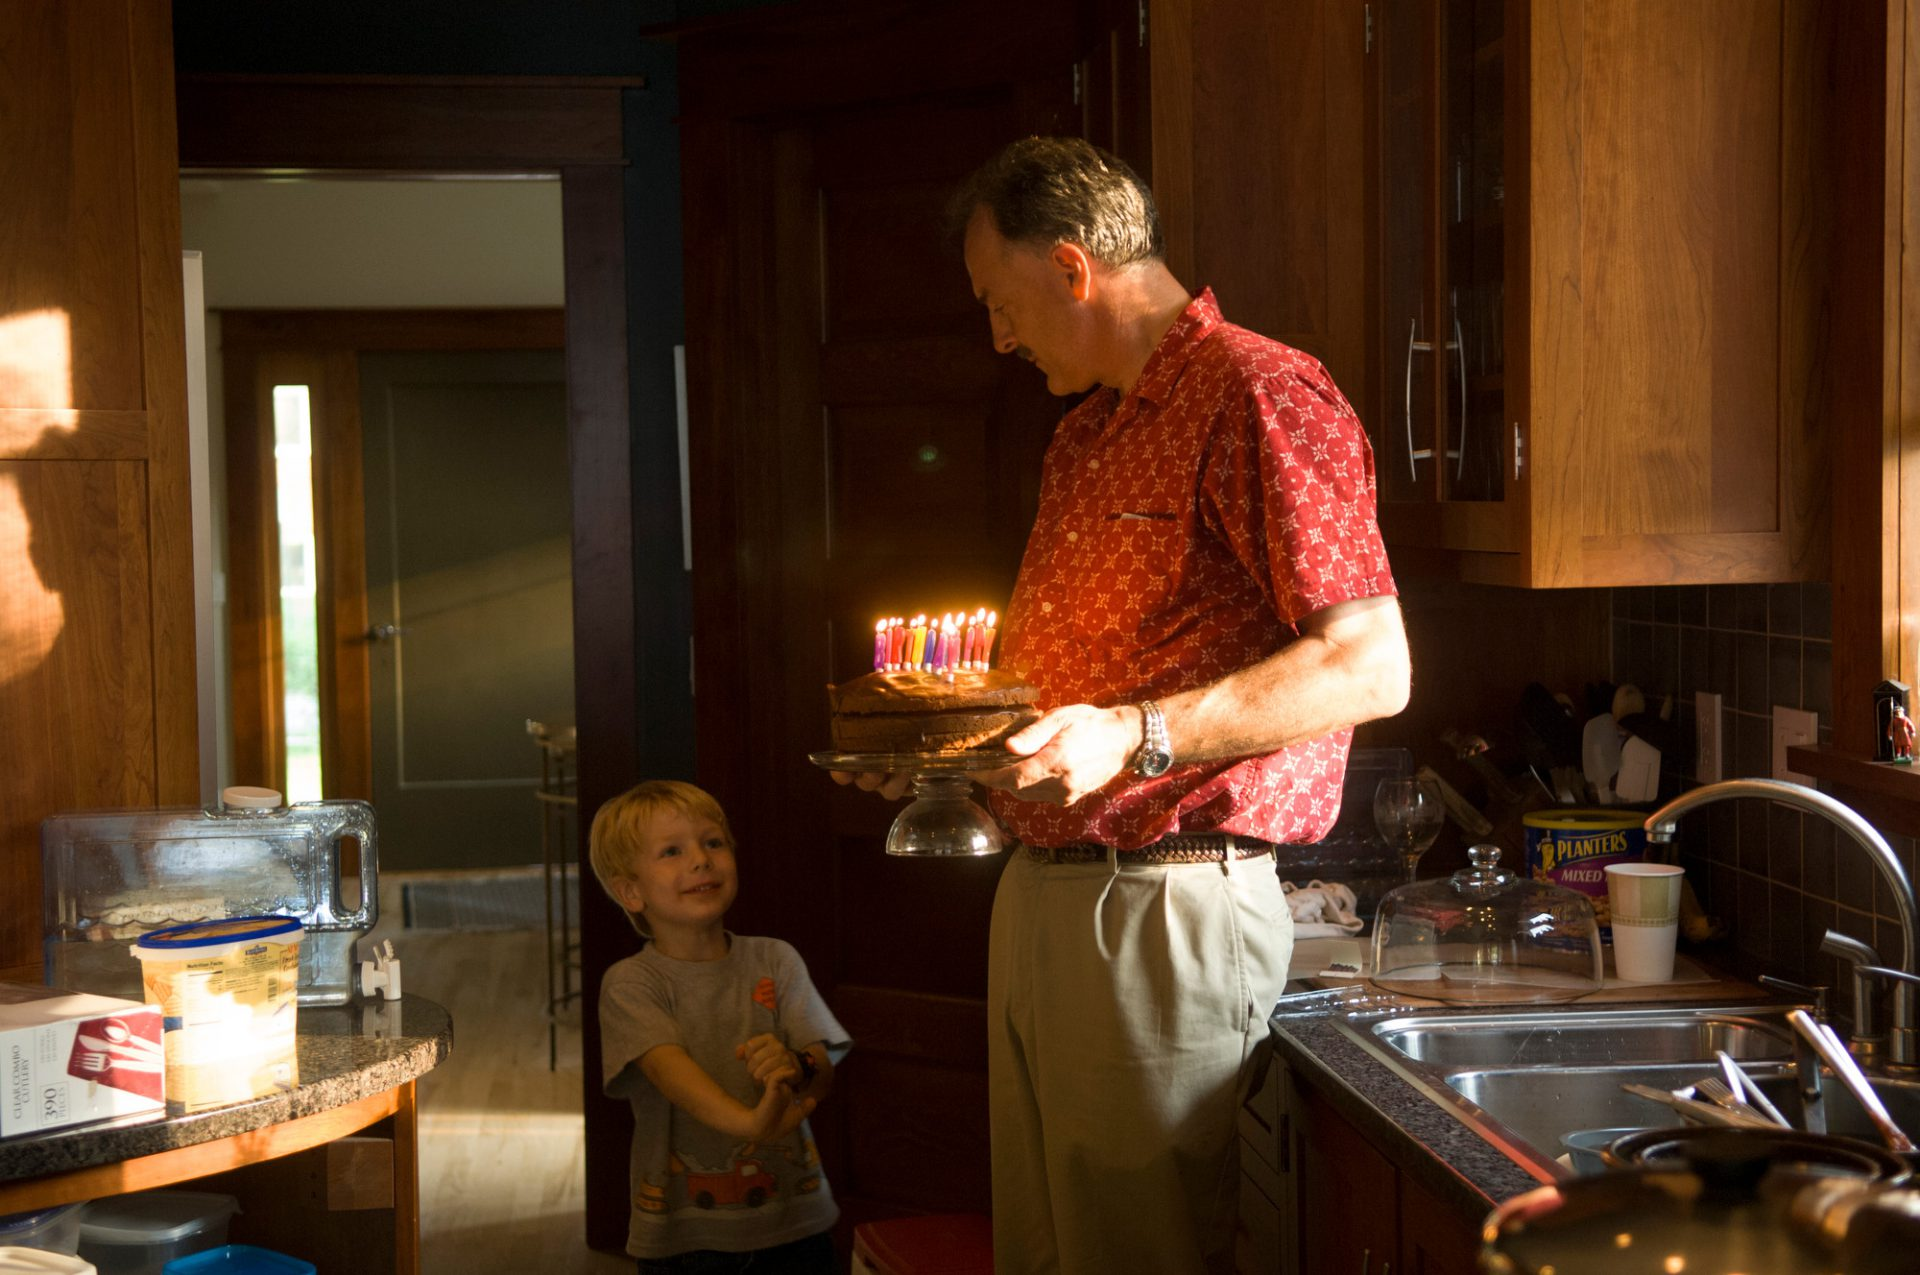 Photo: A man lights candles in celebration of his brother's 50th birthday.